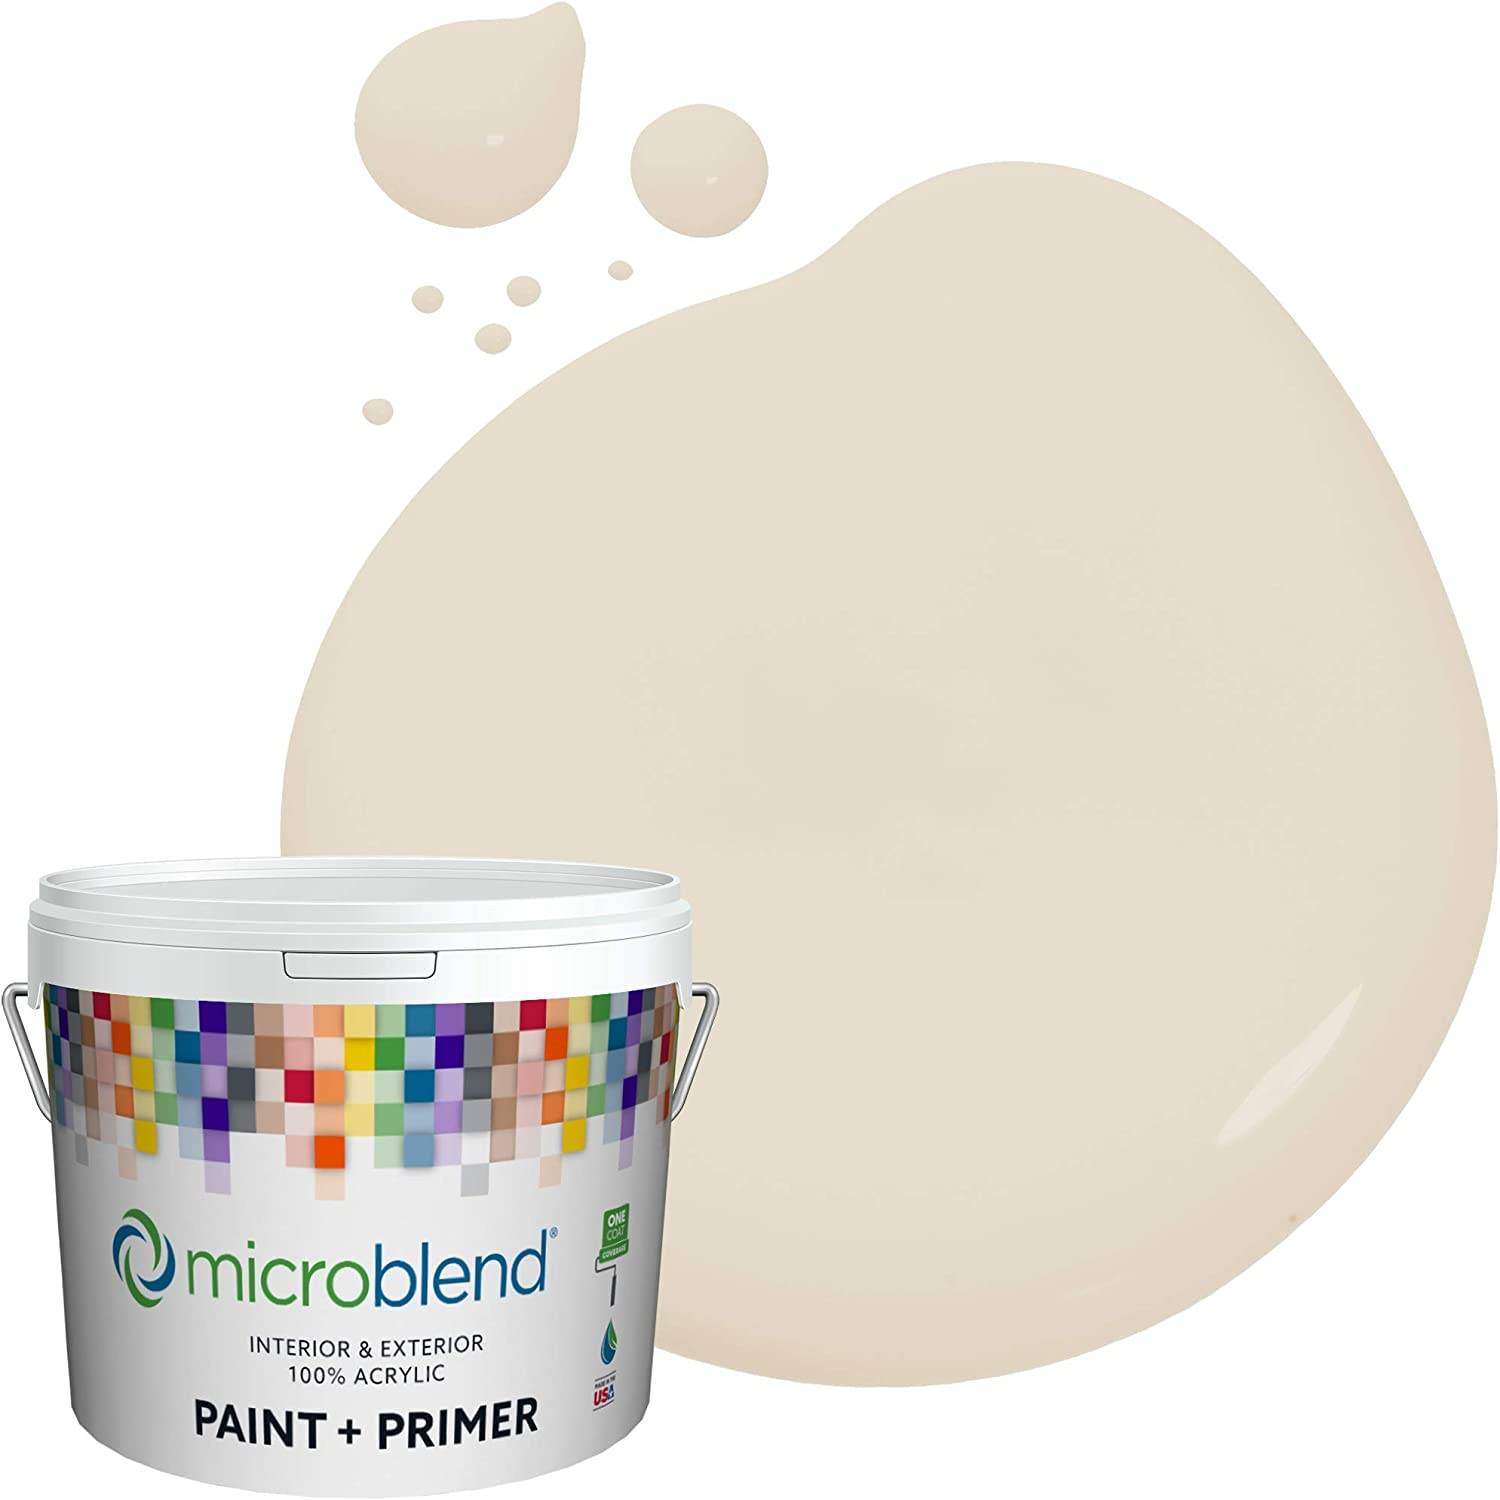 Microblend Interior Paint ご予約品 and Primer Sat Banister Beige - お買い得品